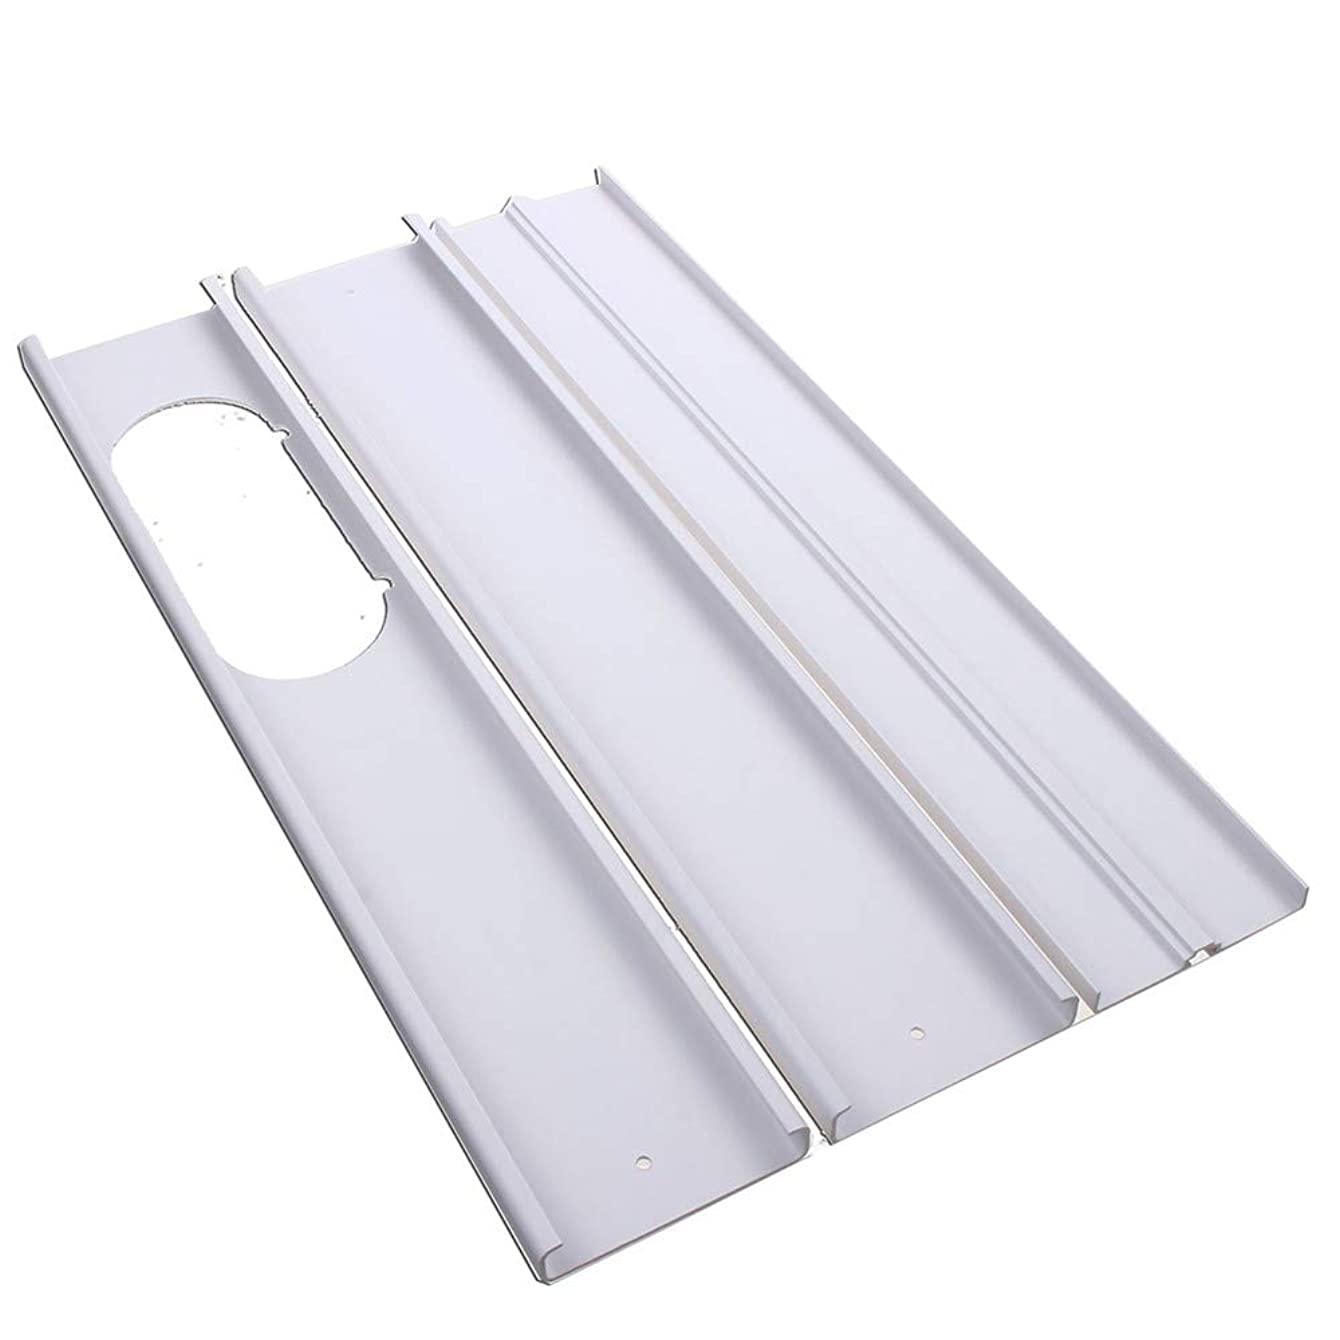 Farway 3PCS Adjustable Window Slide Kit Plate 55-165cm Air Conditioner Wind Shield for Portable Air Conditioner